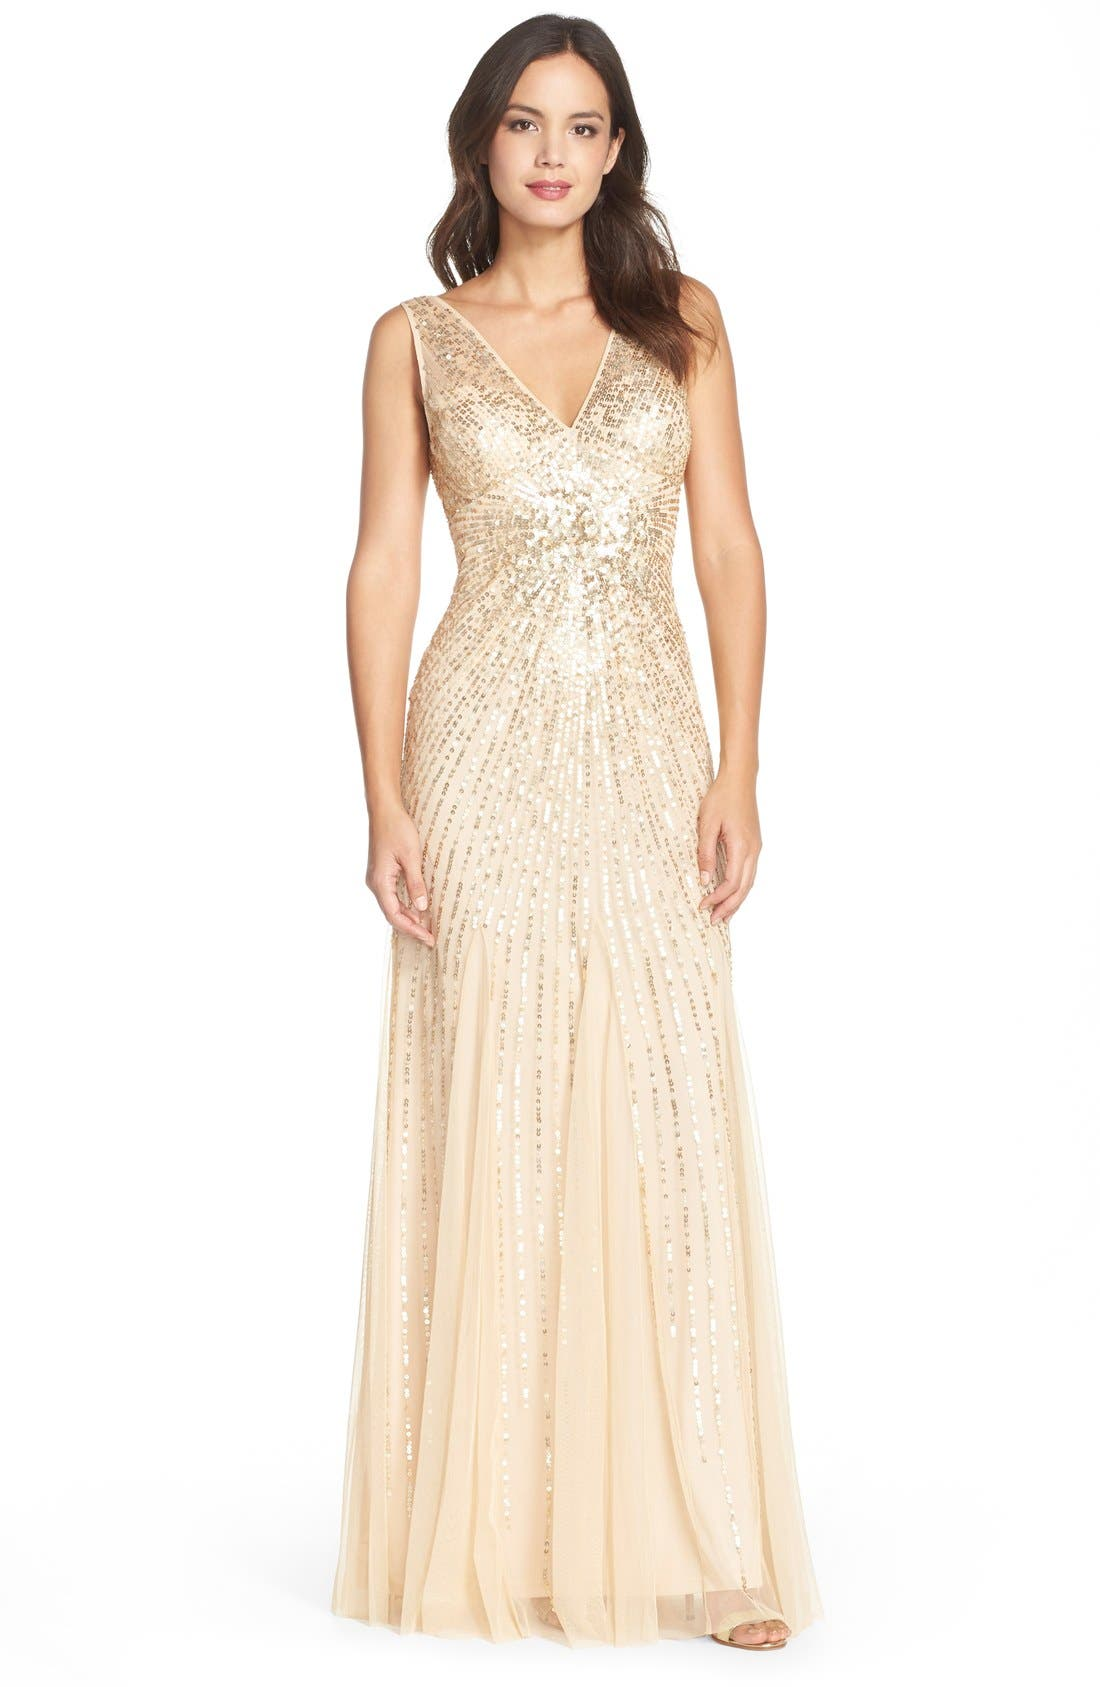 Alternate Image 1 Selected - Adrianna Papell Beaded Mesh Mermaid Gown